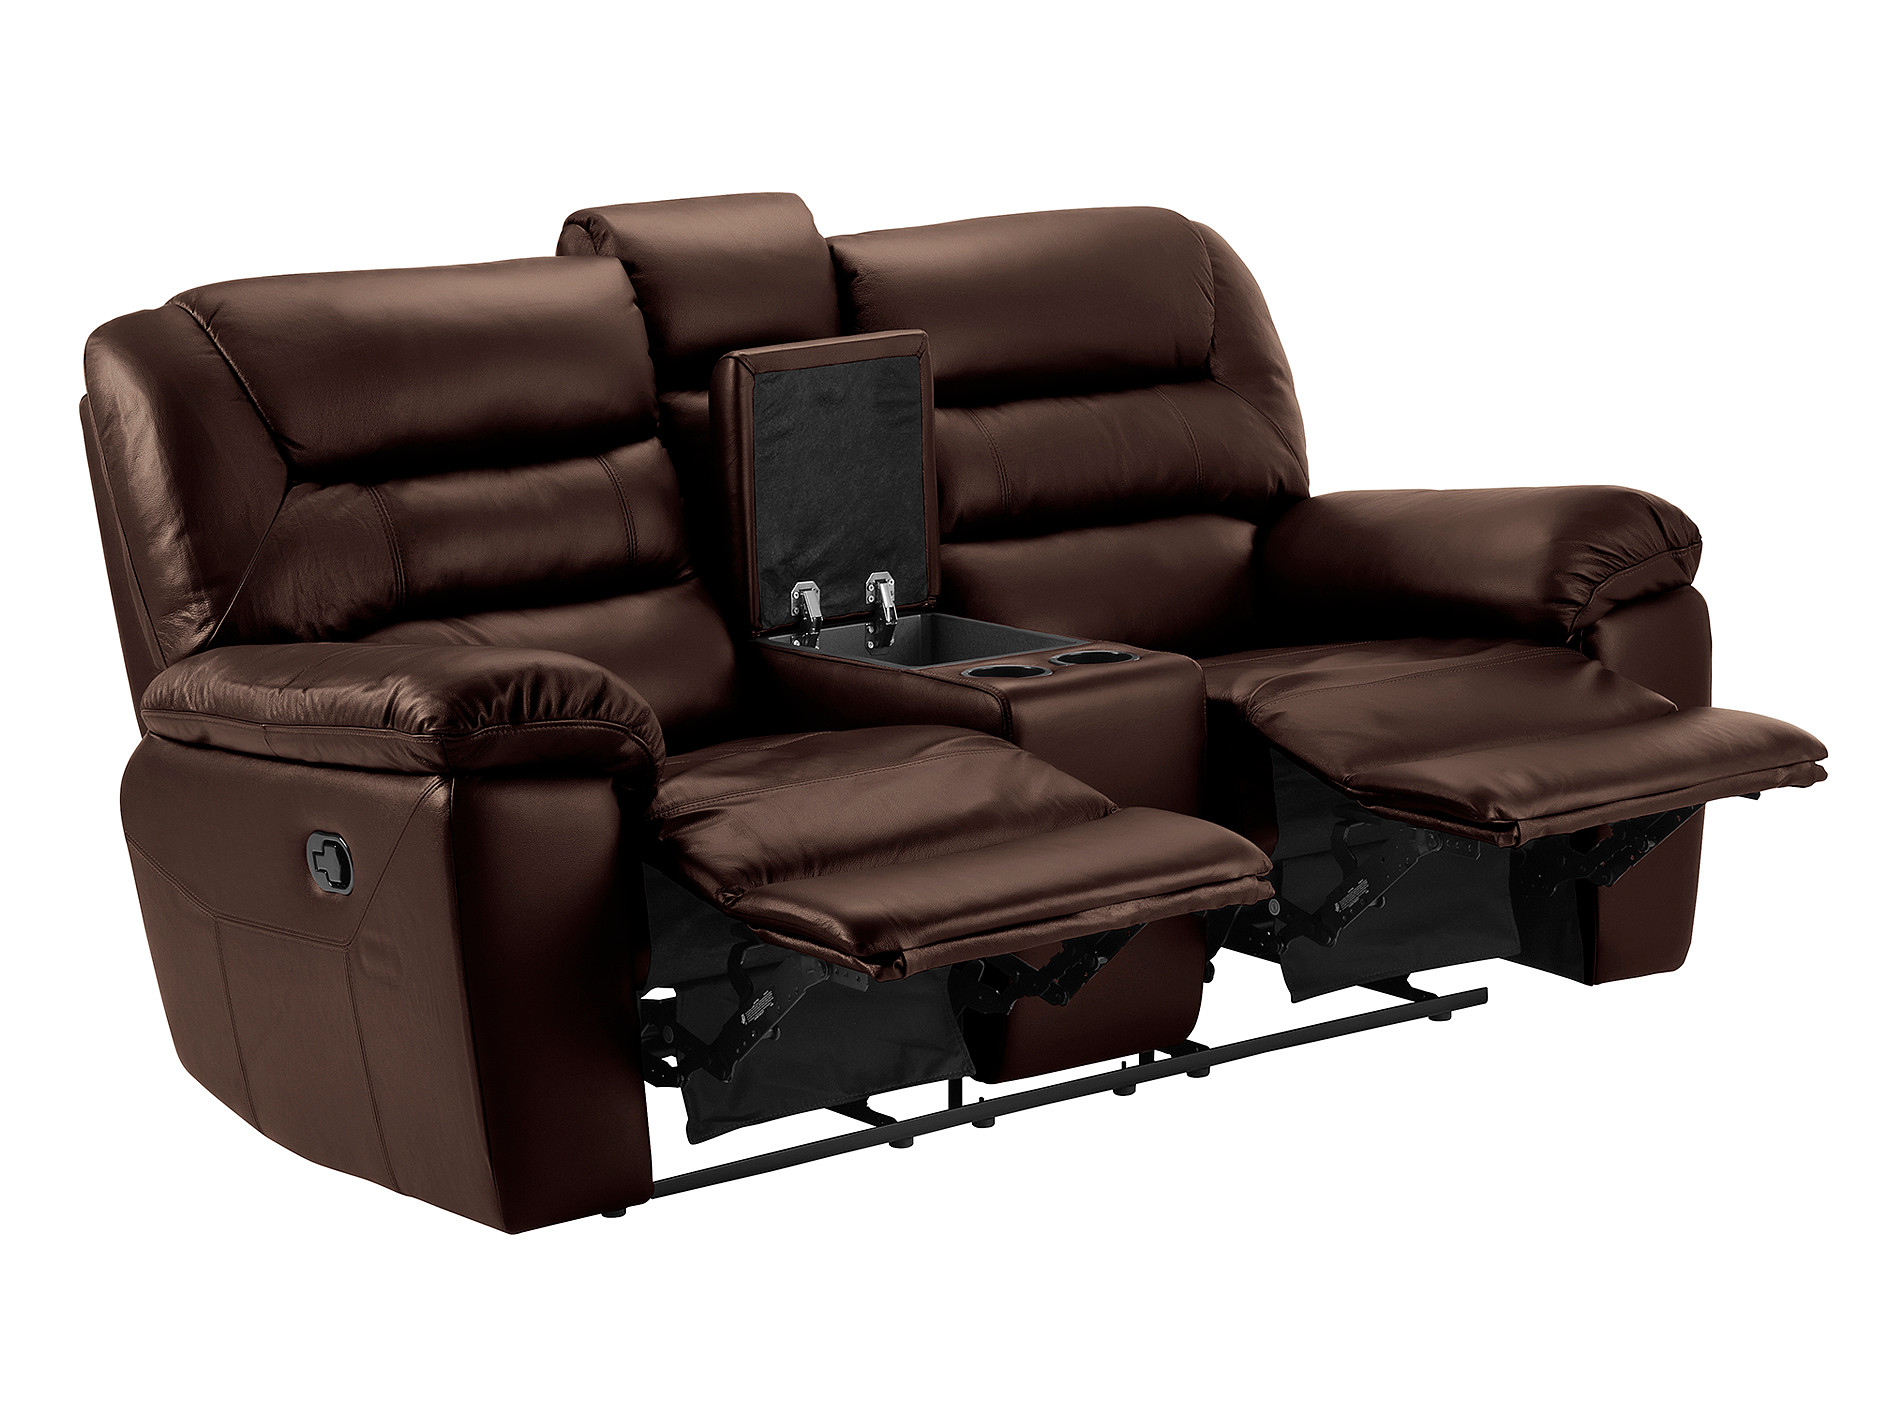 Devon Small Sofa With Manual Recliners 2 Tone Brown Leather